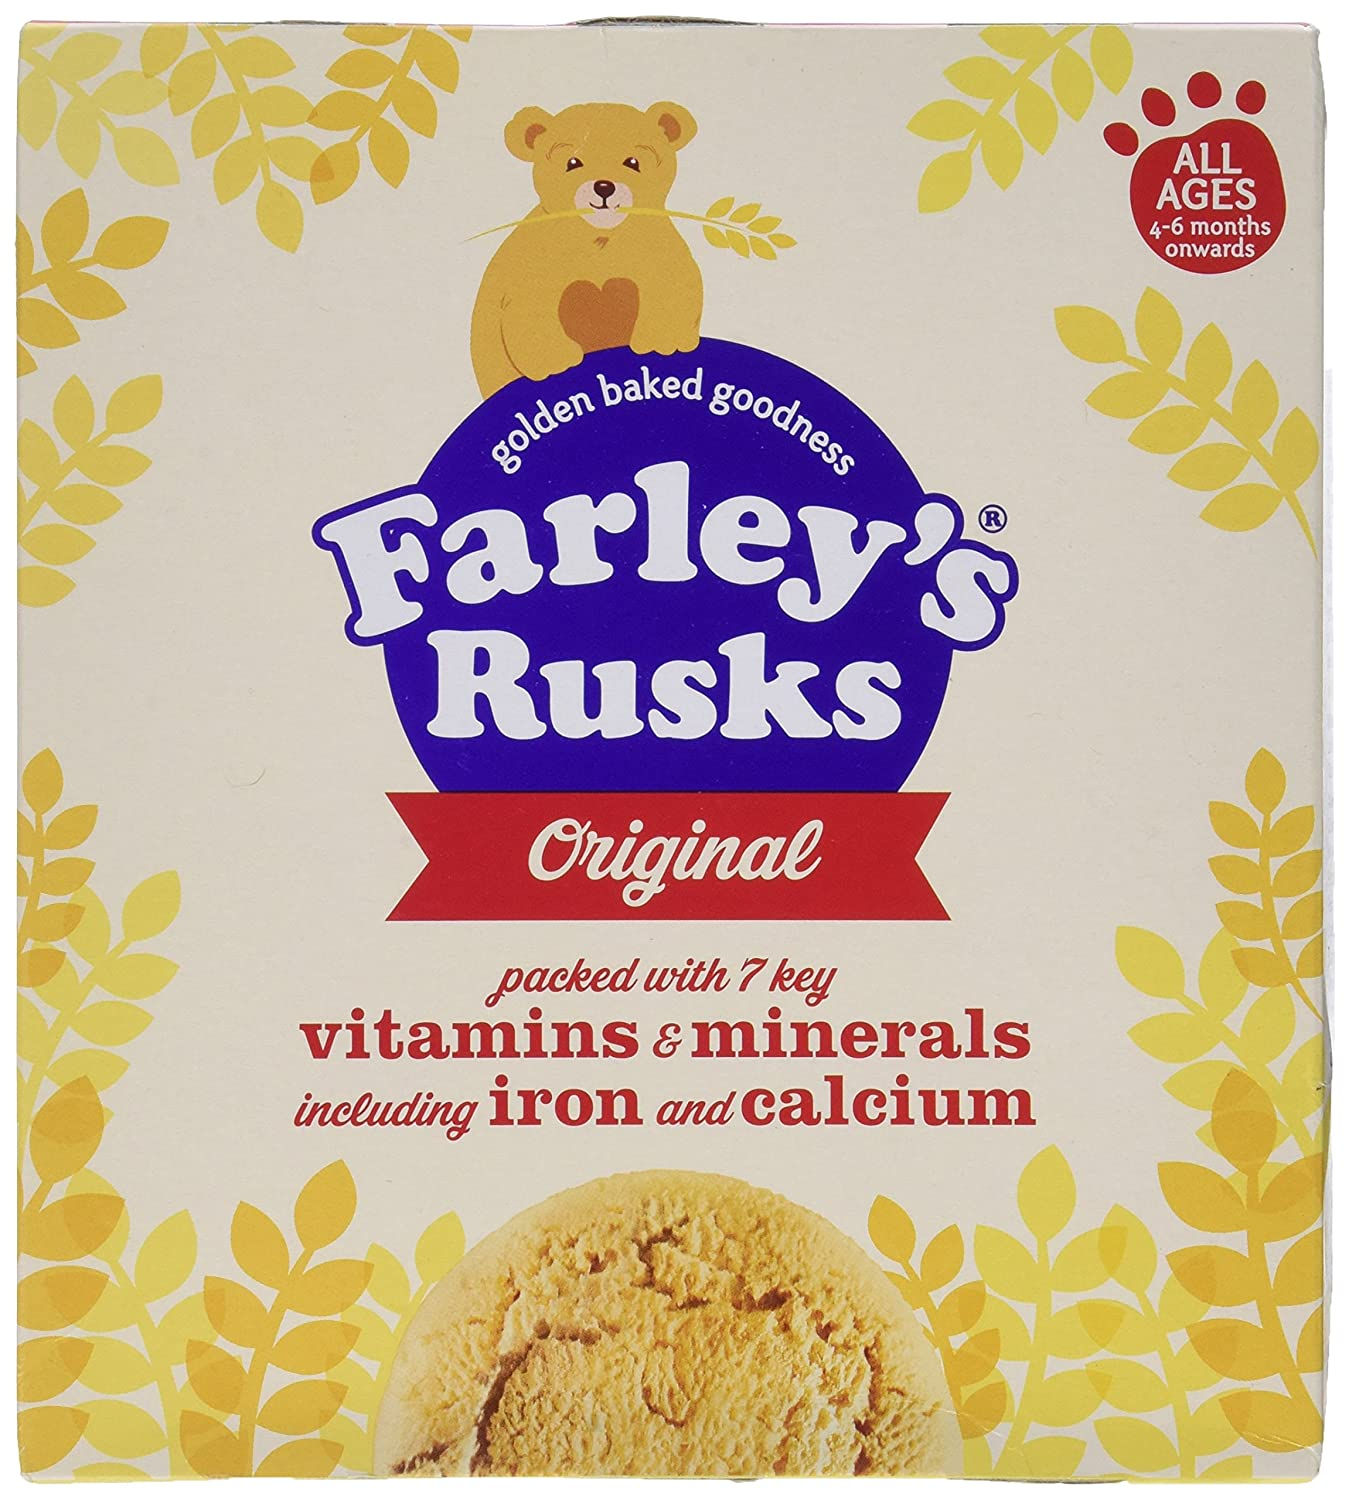 Heinz Farley's Rusks Original 4mth+ (18 per pack - 300g) Grocery